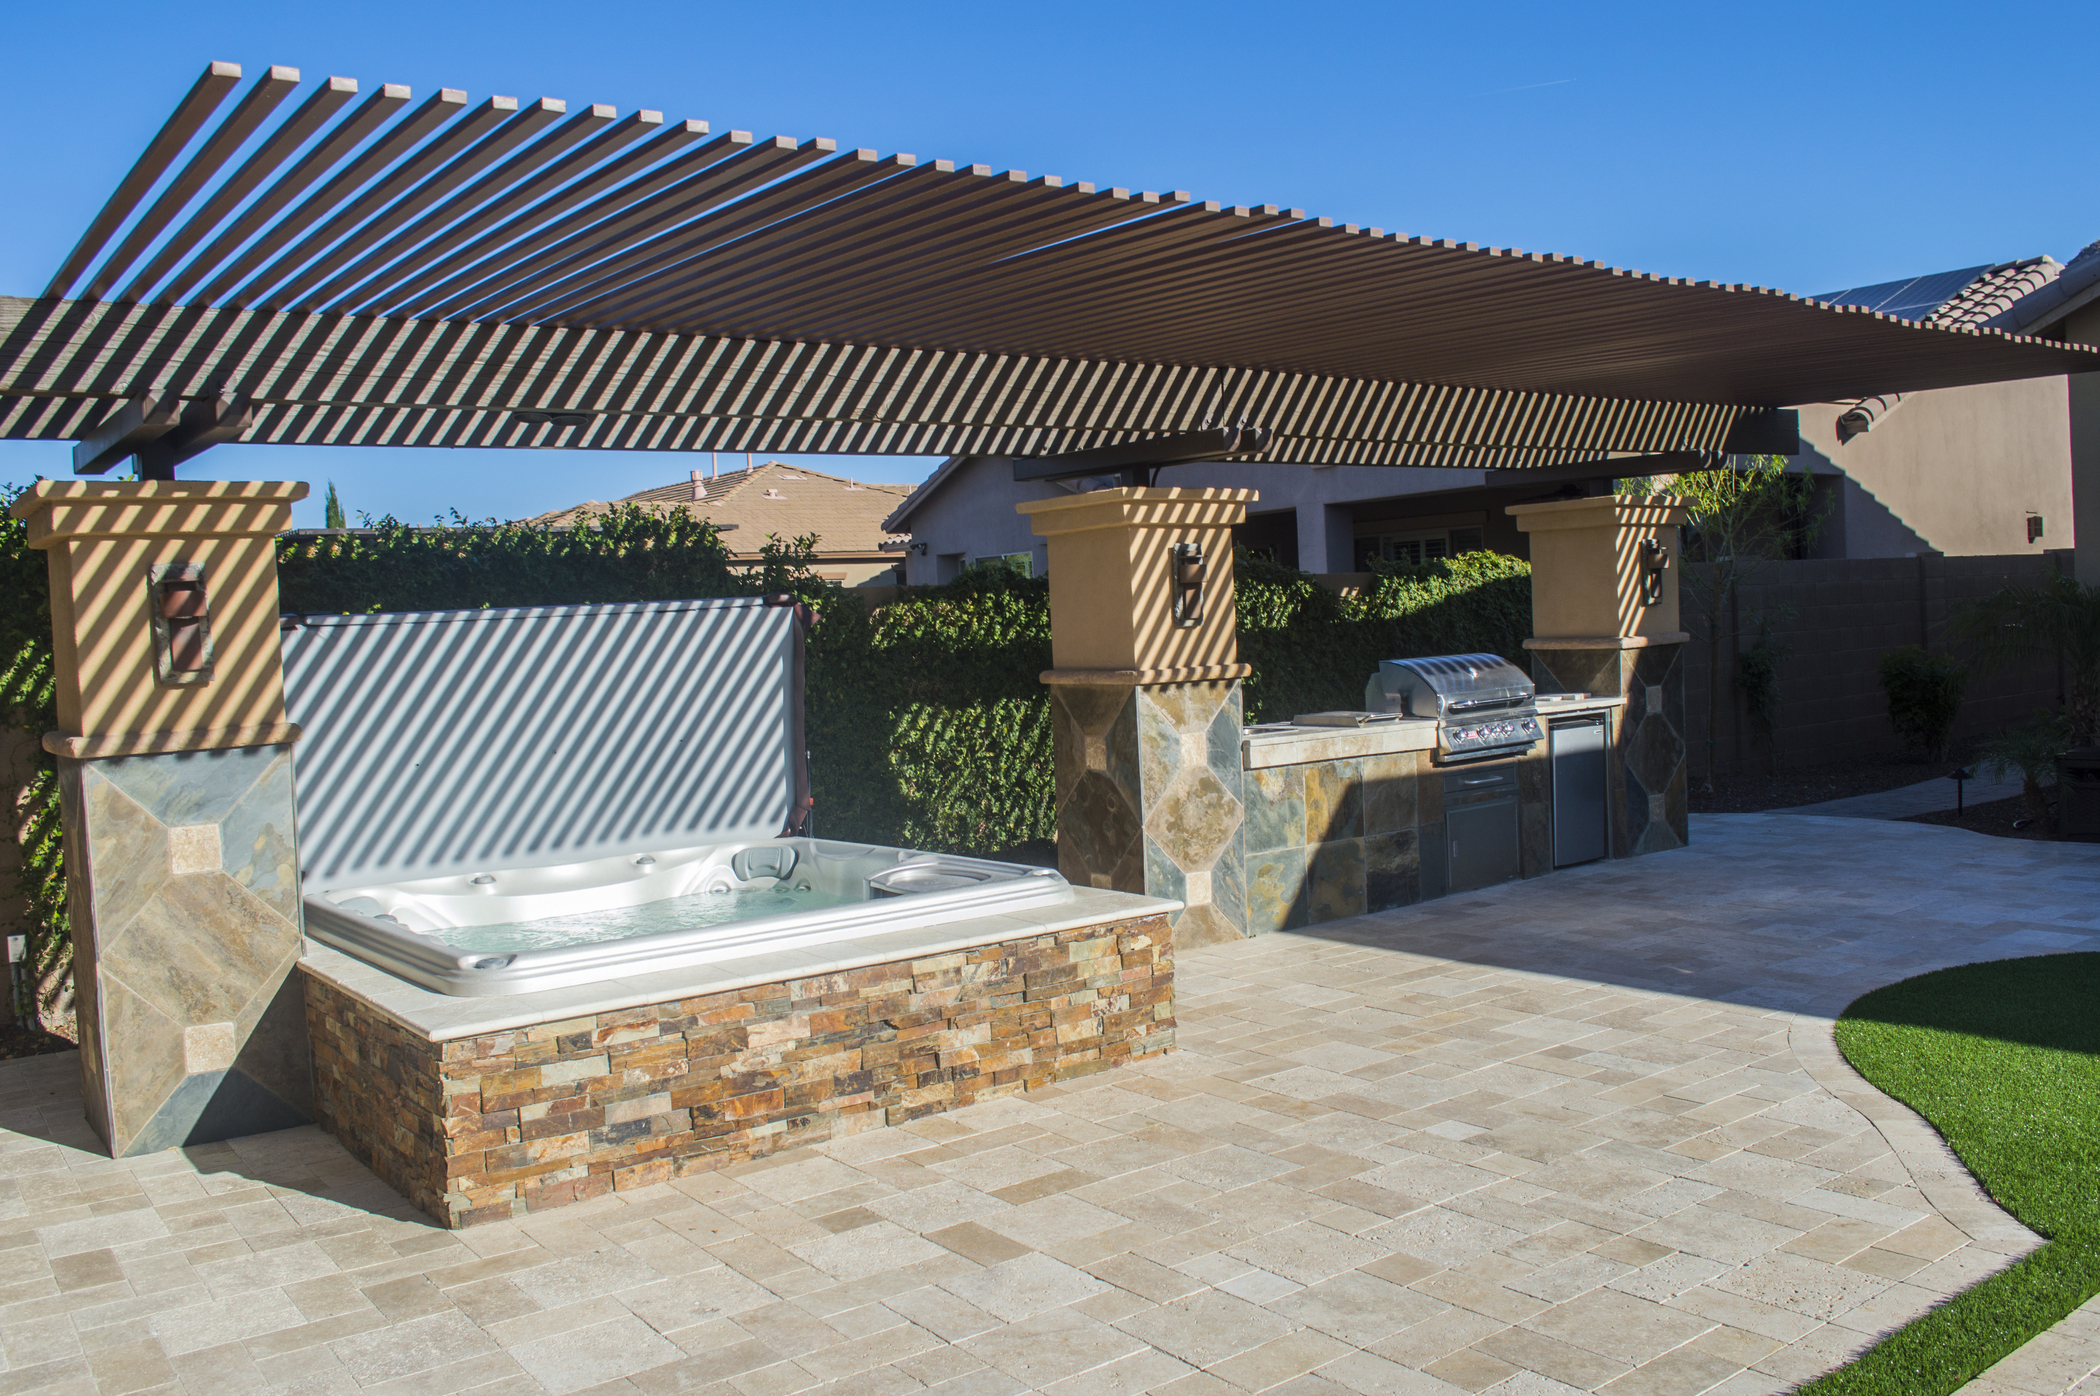 Private outdoor hot tub installation.